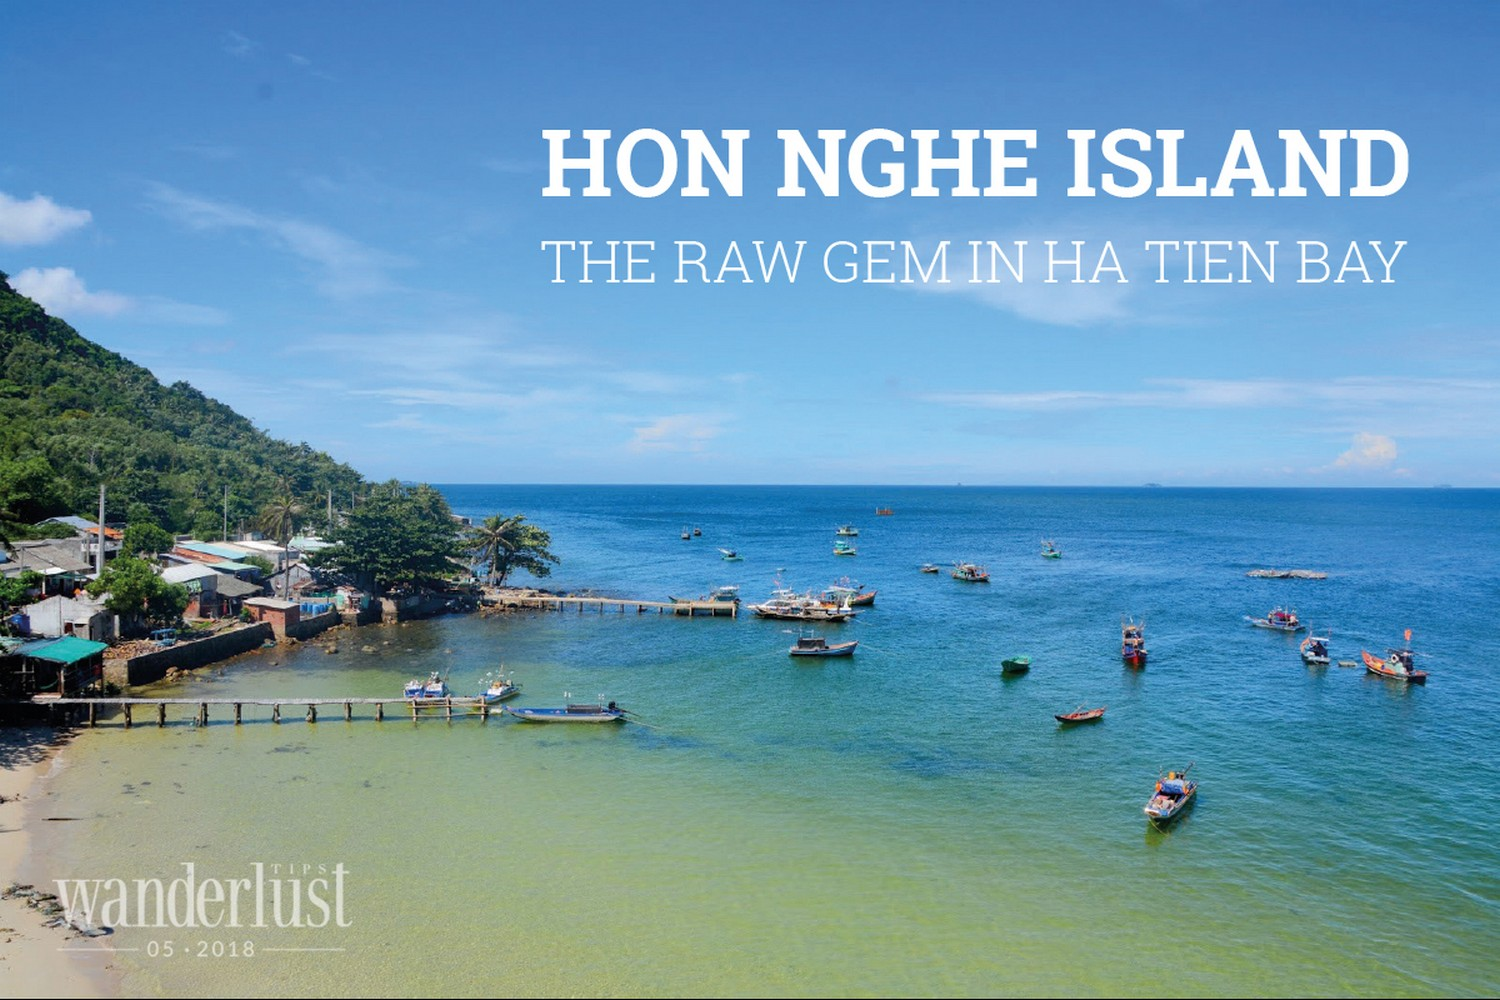 Wanderlust Tips Magazine | Hon Nghe Island - The raw gem in Ha Tien bay